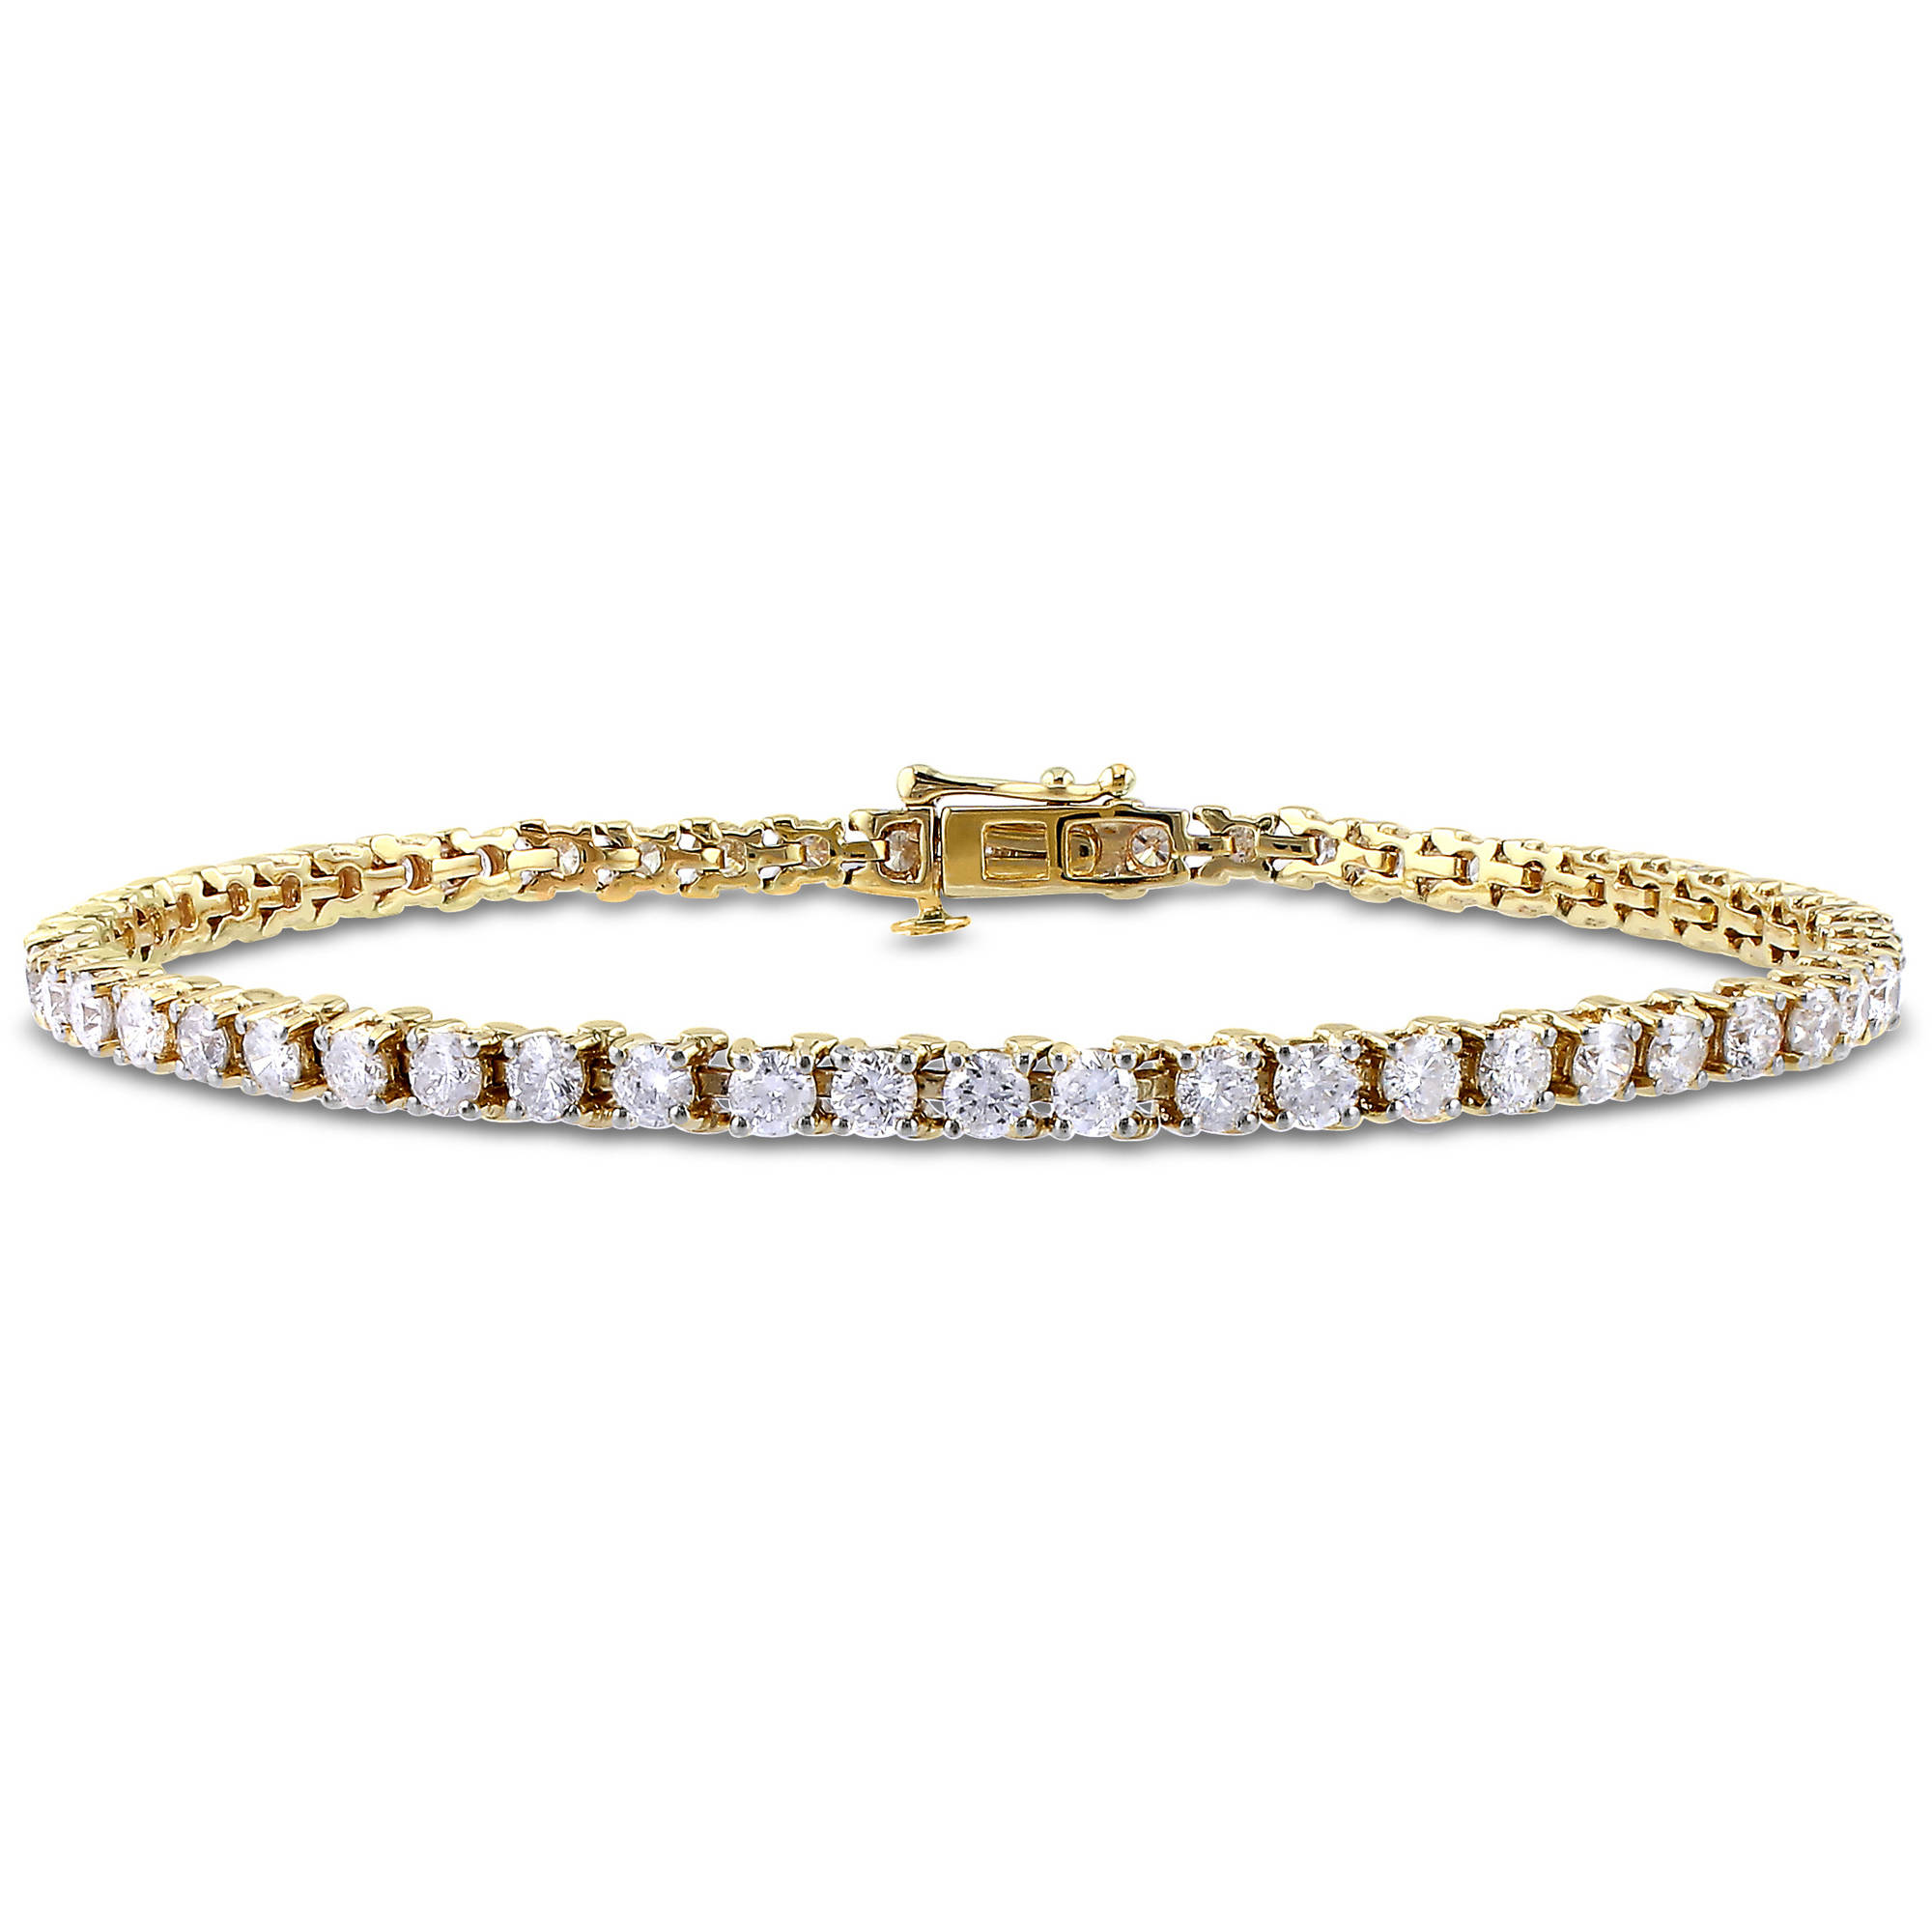 "Miabella 4 Carat T.W. Diamond 14kt Yellow Gold Tennis Bracelet, 7.25"" by Generic"